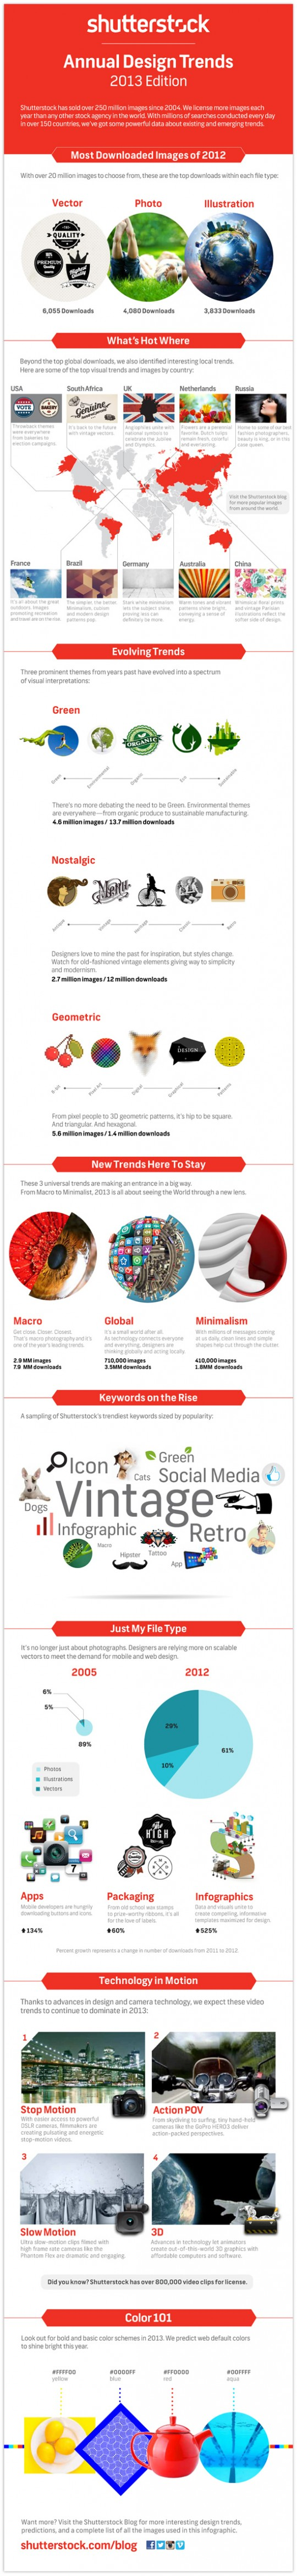 Shutterstock infographic